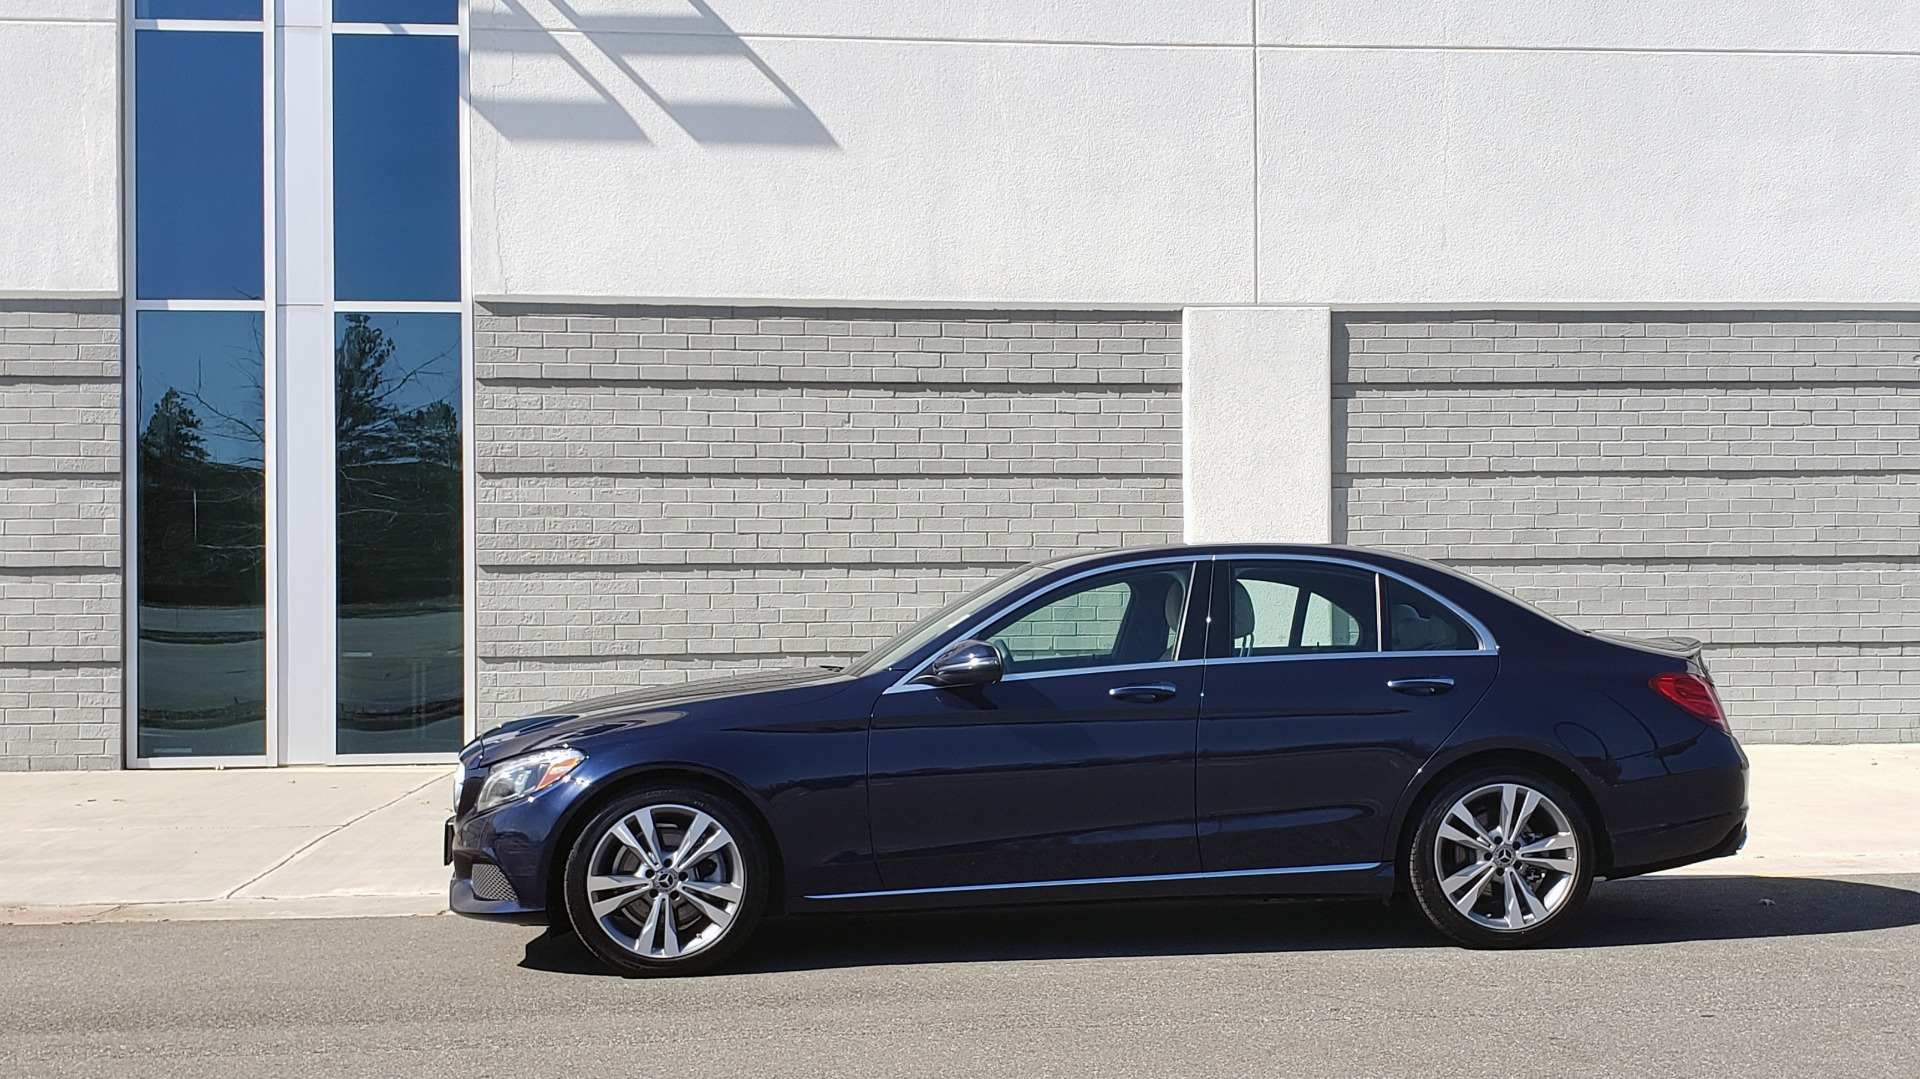 Used 2018 Mercedes-Benz C-CLASS C 300 PREMIUM / SUNROOF / BURMESTER / BSM / REARVIEW for sale $23,995 at Formula Imports in Charlotte NC 28227 3